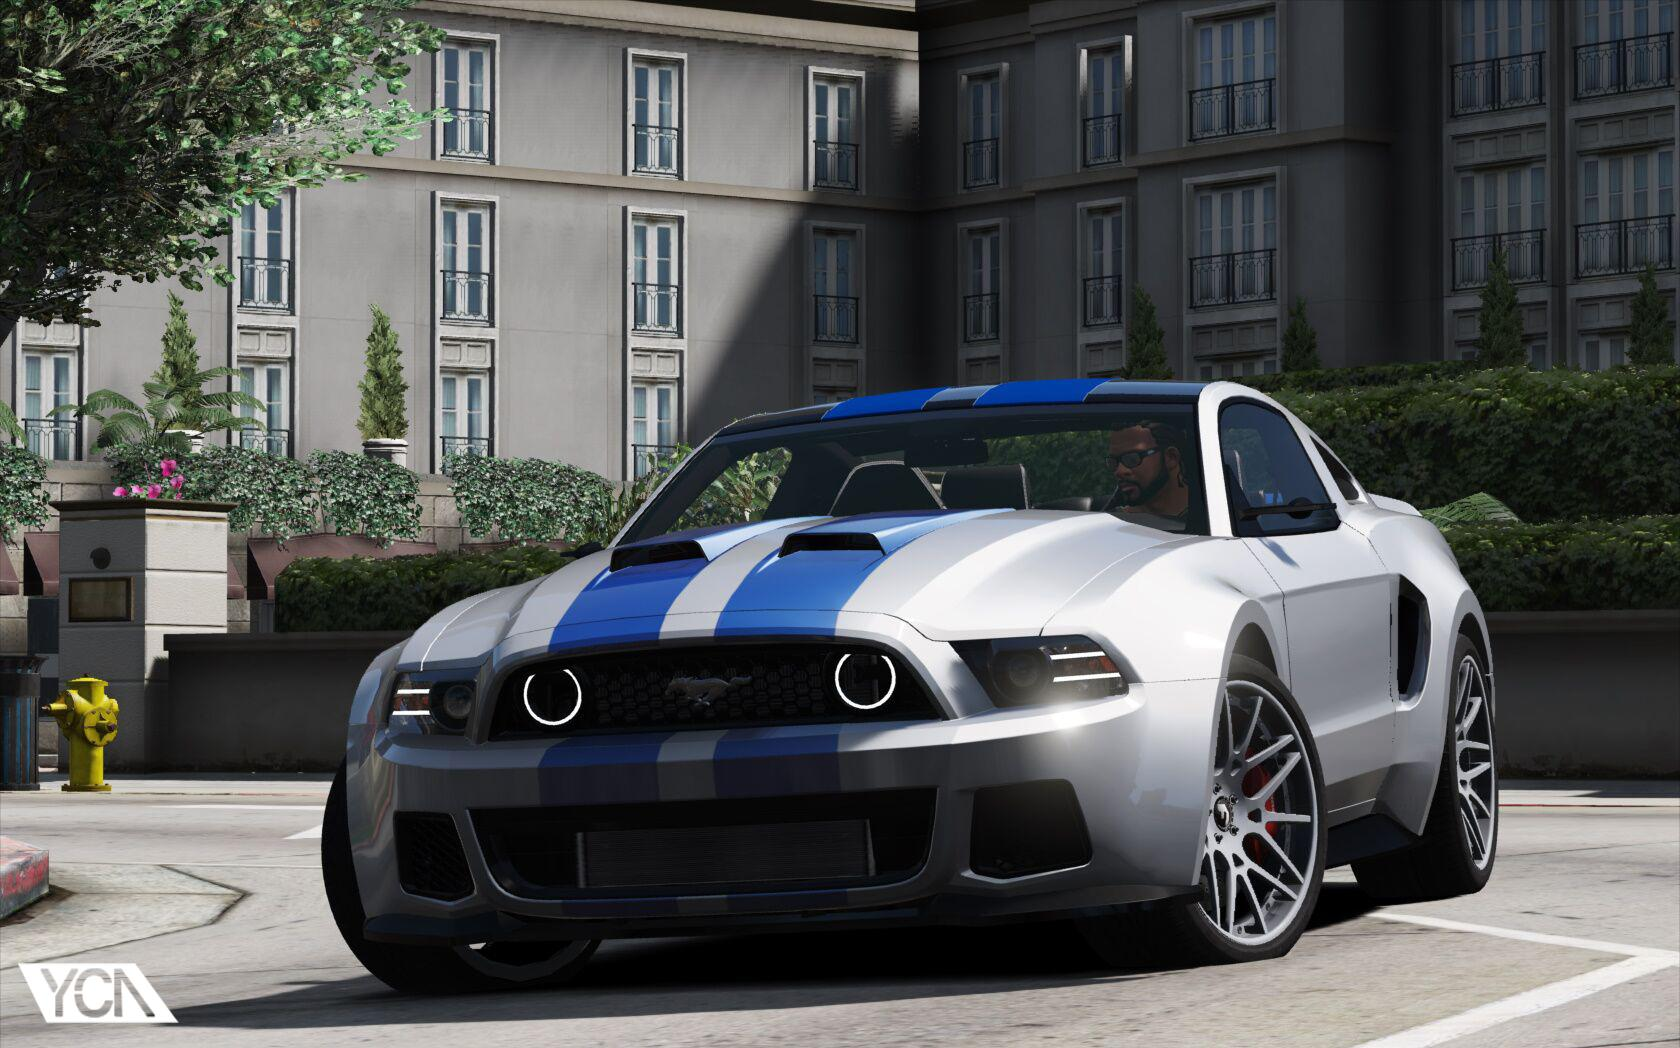 ford mustang gt nfs gt500 2013 add on gta5. Black Bedroom Furniture Sets. Home Design Ideas